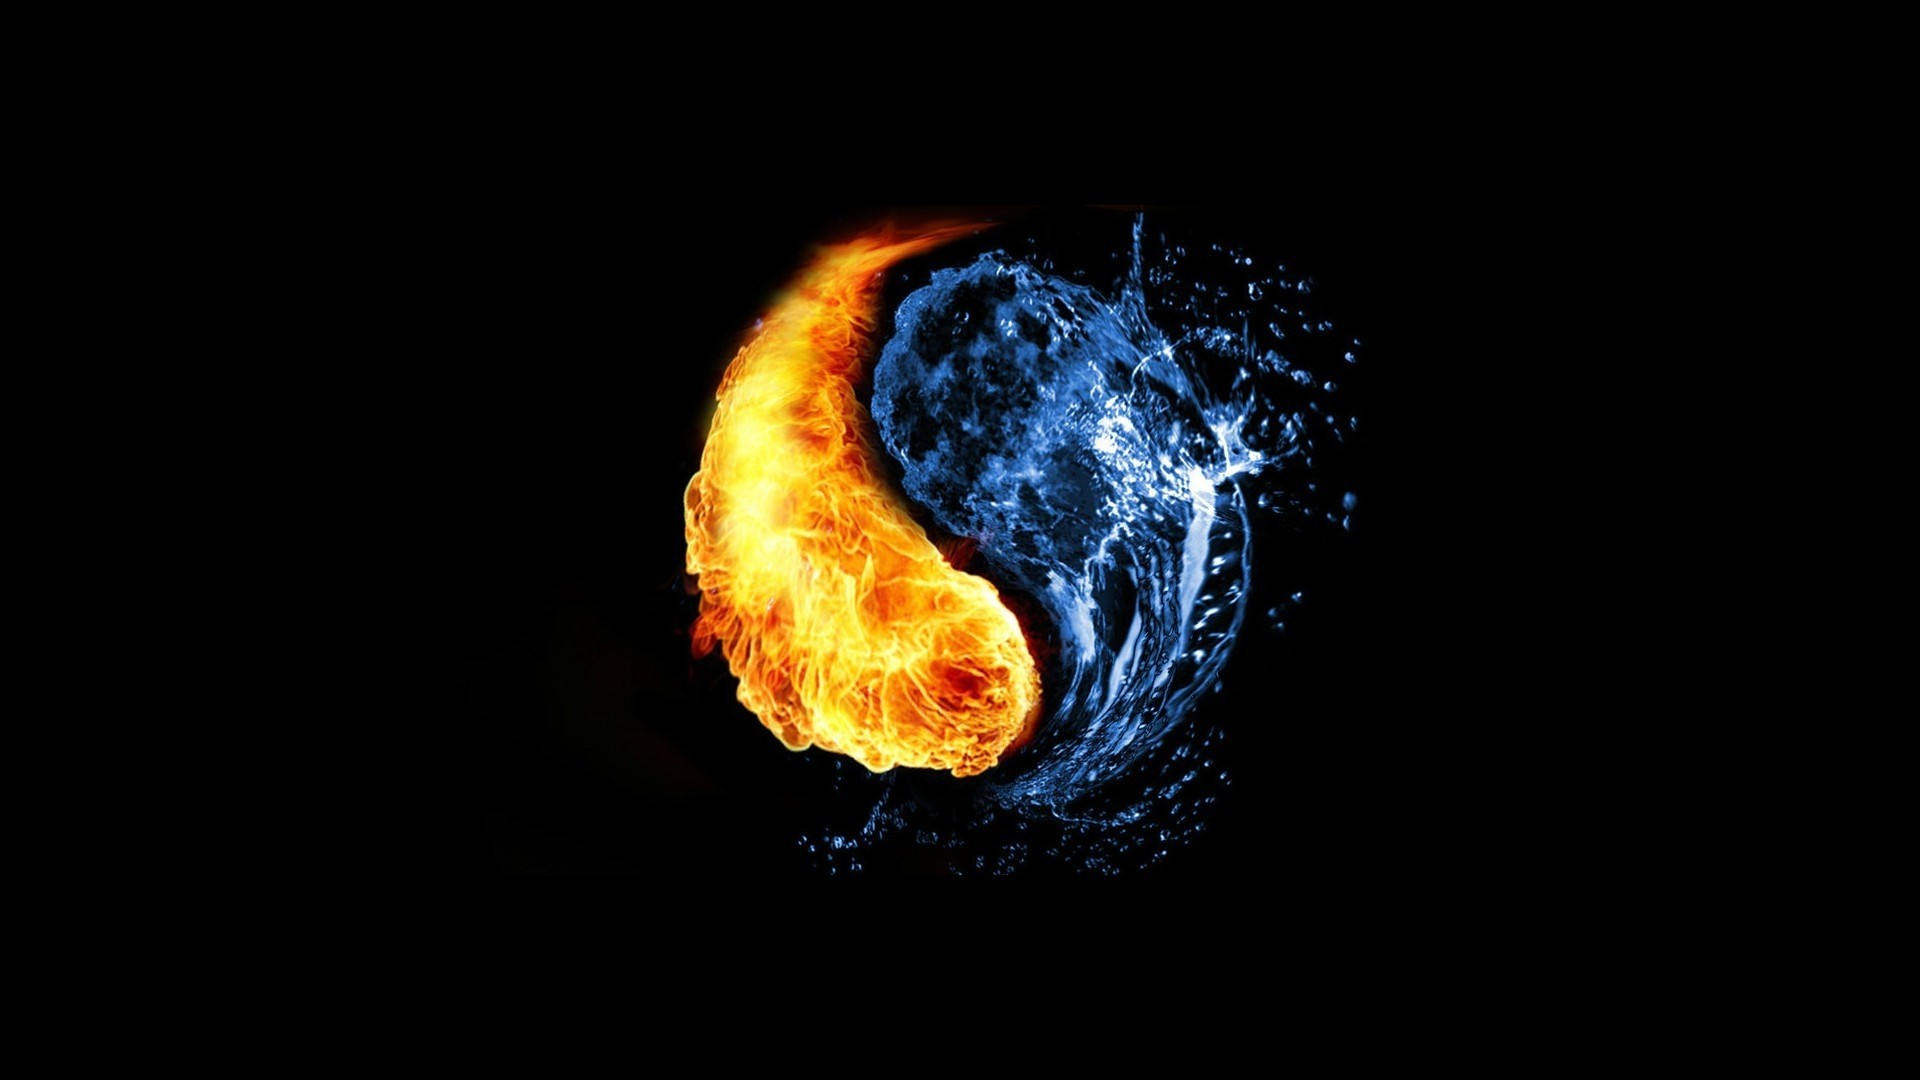 Fire And Ice wallpaper photo hd